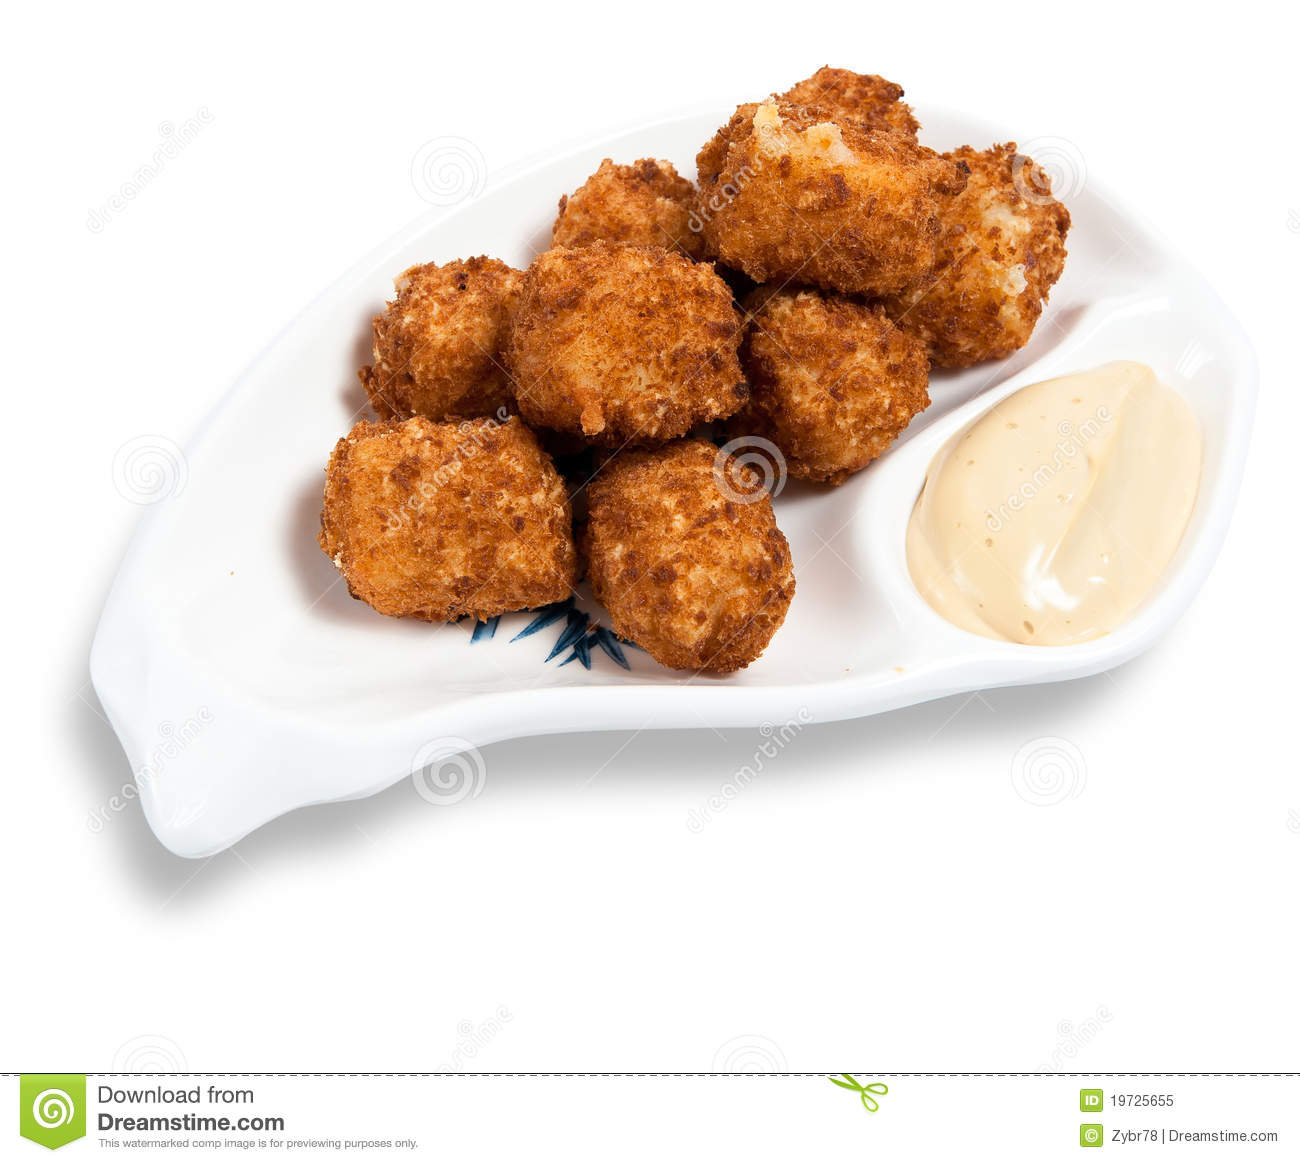 Cheese balls with garlic sauce